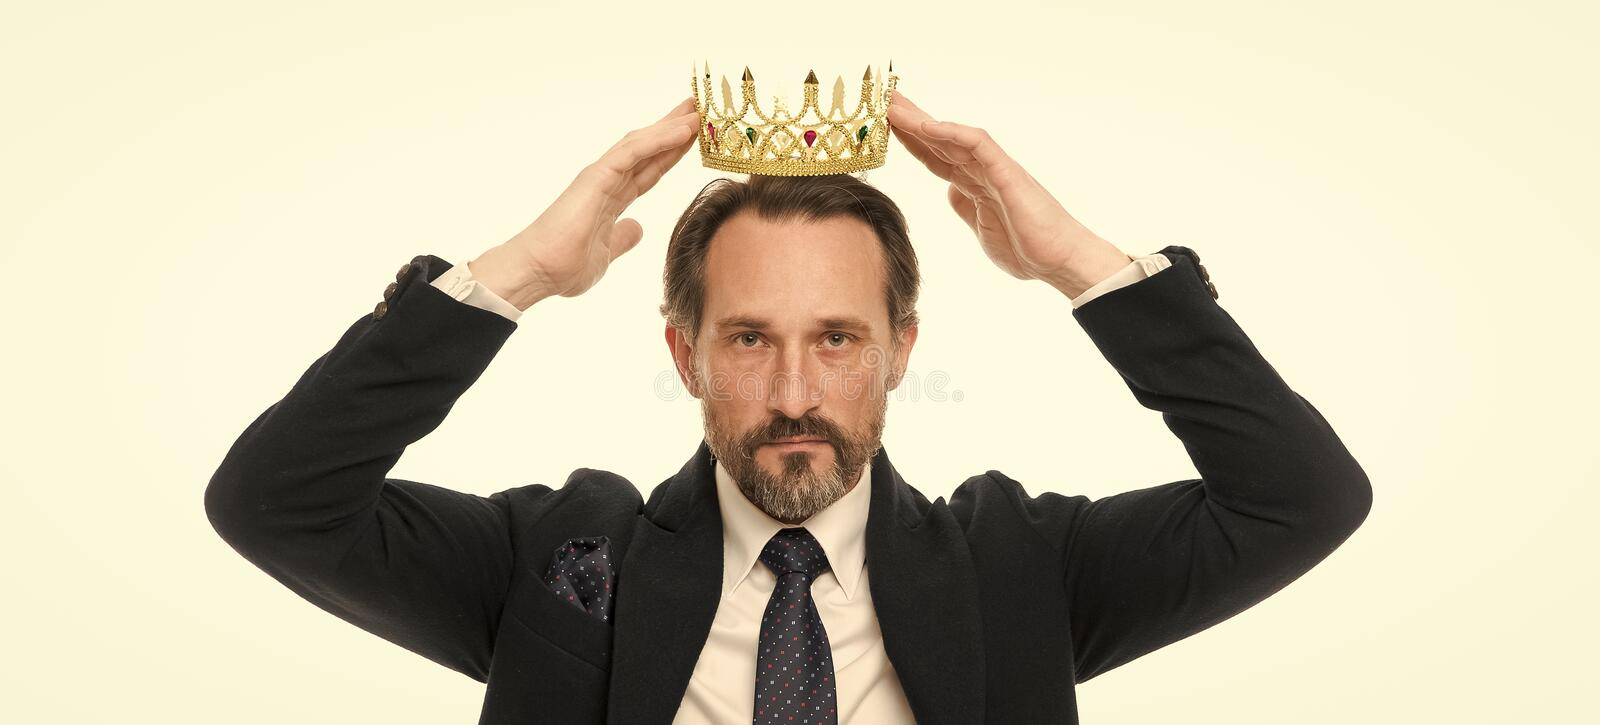 Monarchy family traditions. Man nature bearded guy in suit hold golden crown symbol of monarchy. Direct line to throne royalty free stock image